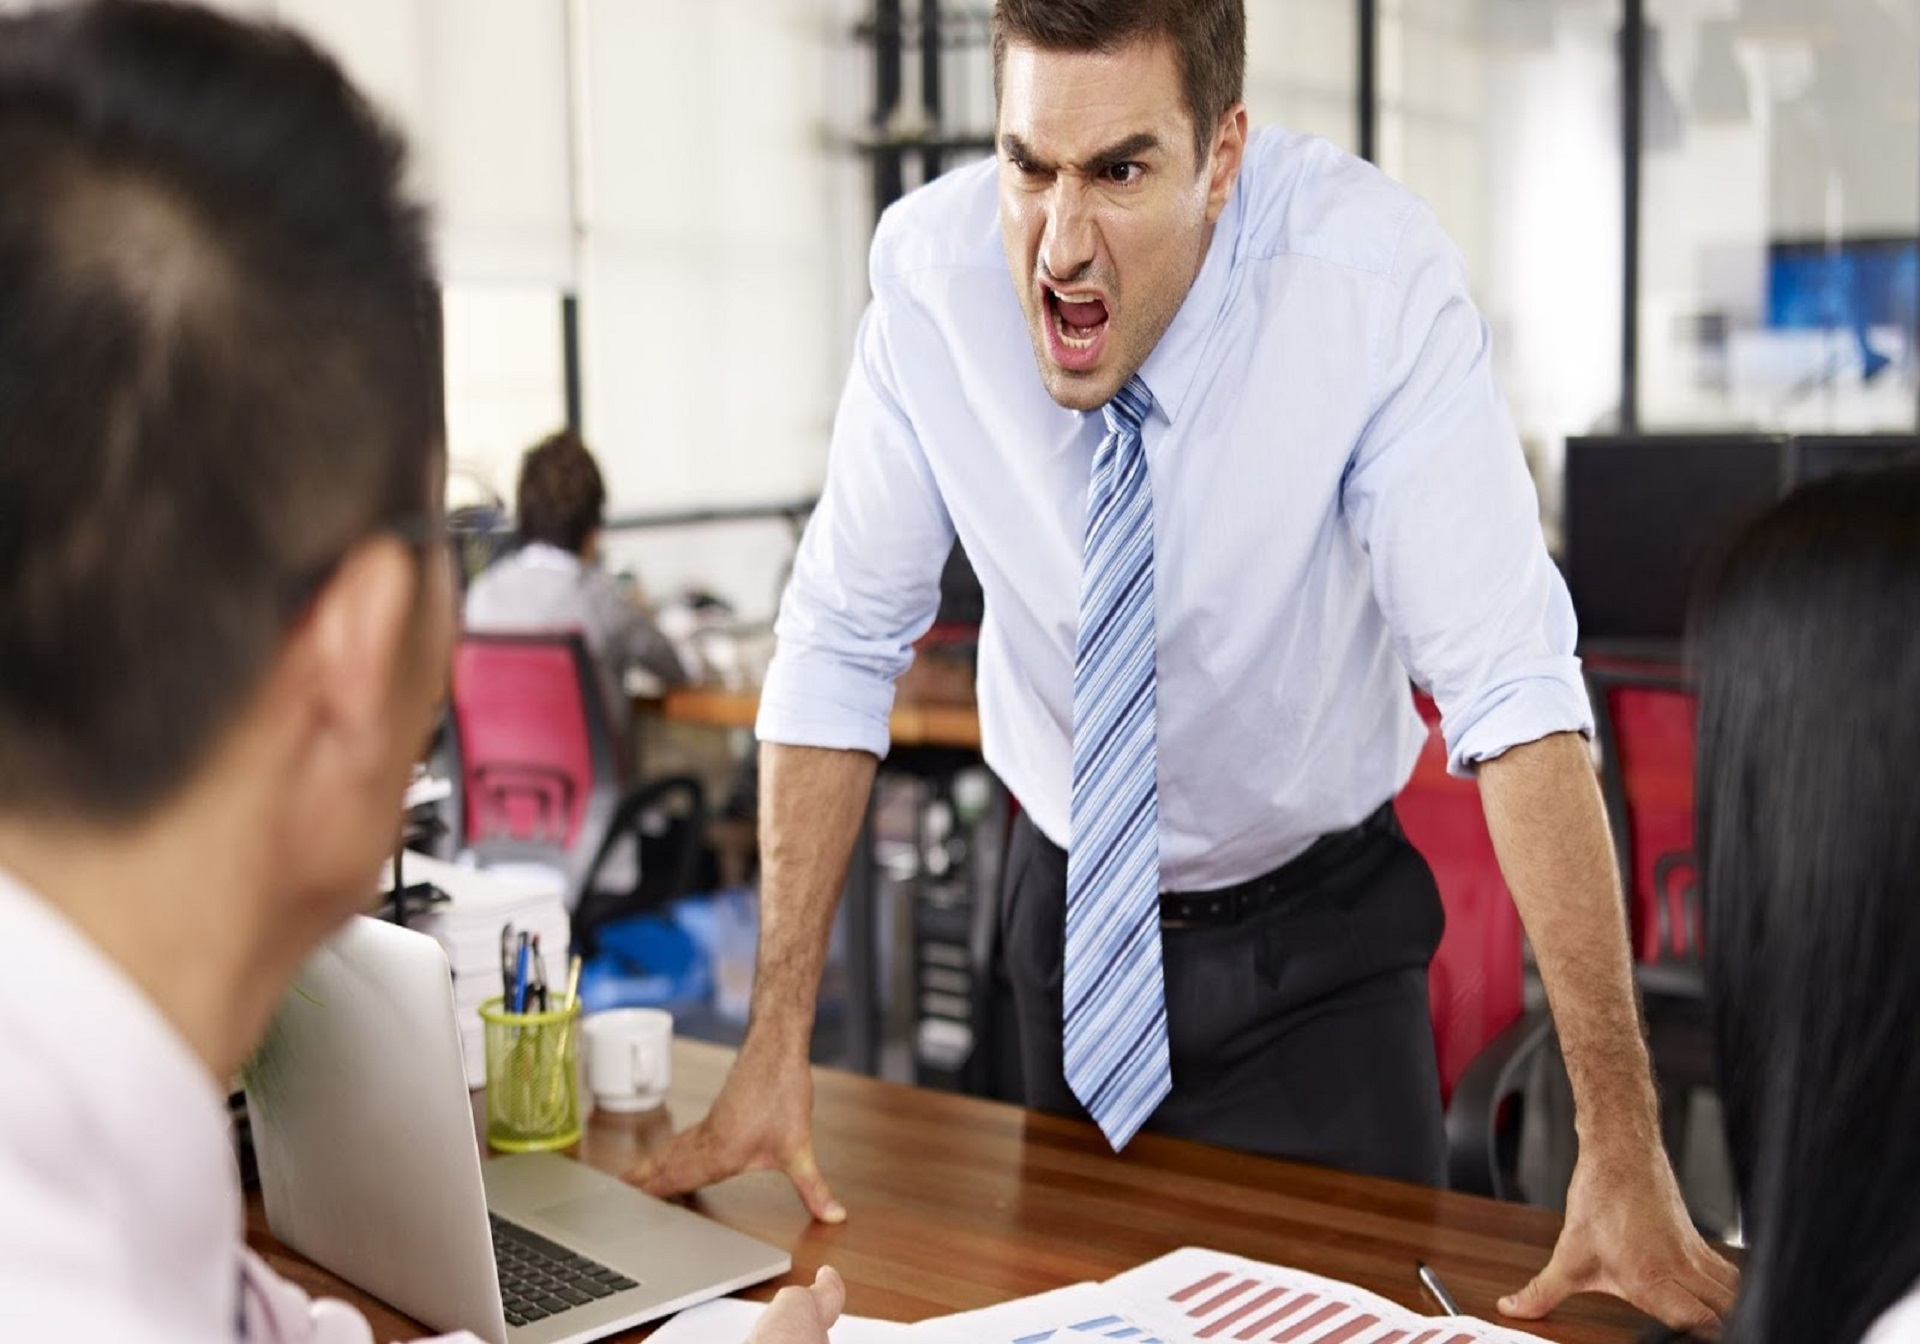 Dealing With Bullies at Work